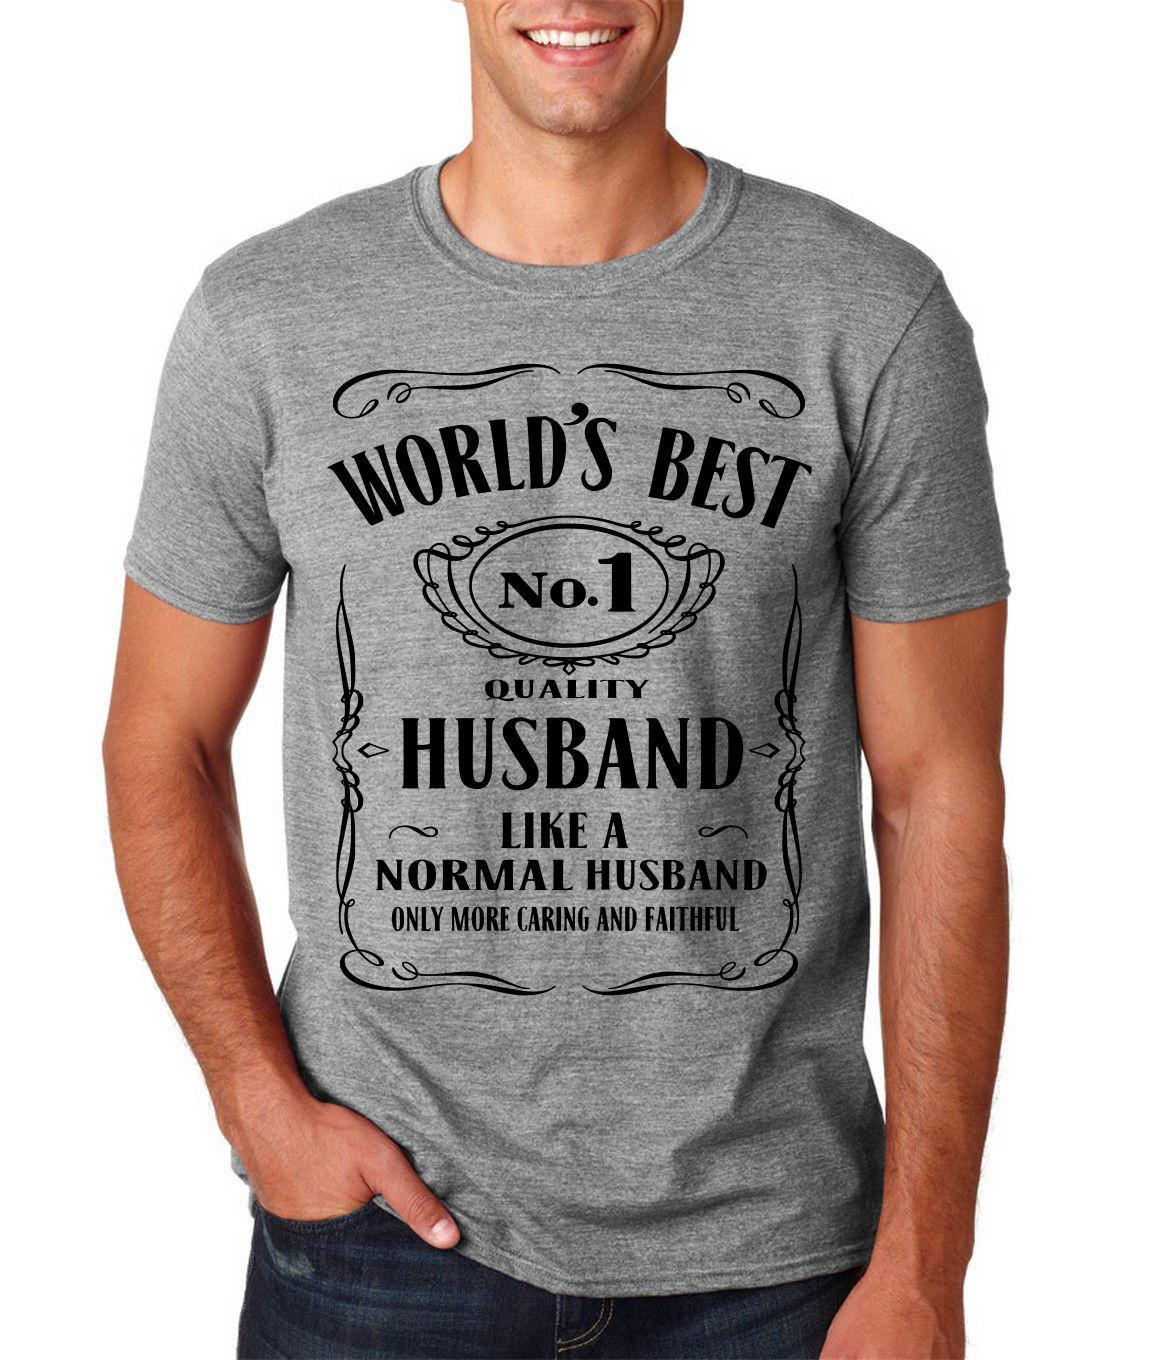 World Best Husband No 1 Mens T Shirt Birthday Gift Valentine Funny Lovers DTFunny Unisex Casual Tshirt Top Cool And Shirts Buy A From